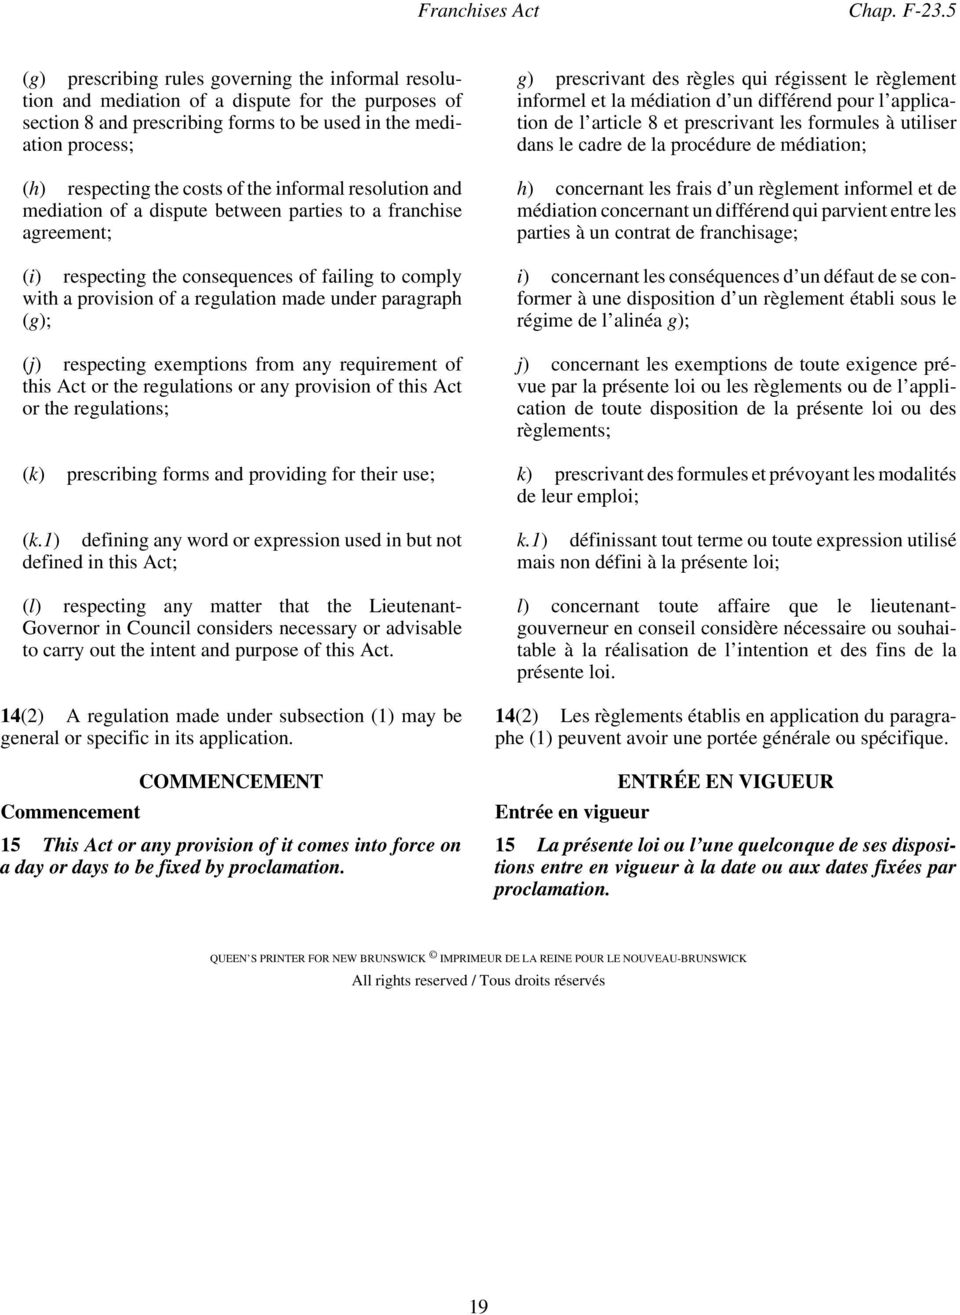 of the informal resolution and mediation of a dispute between parties to a franchise agreement; (i) respecting the consequences of failing to comply with a provision of a regulation made under